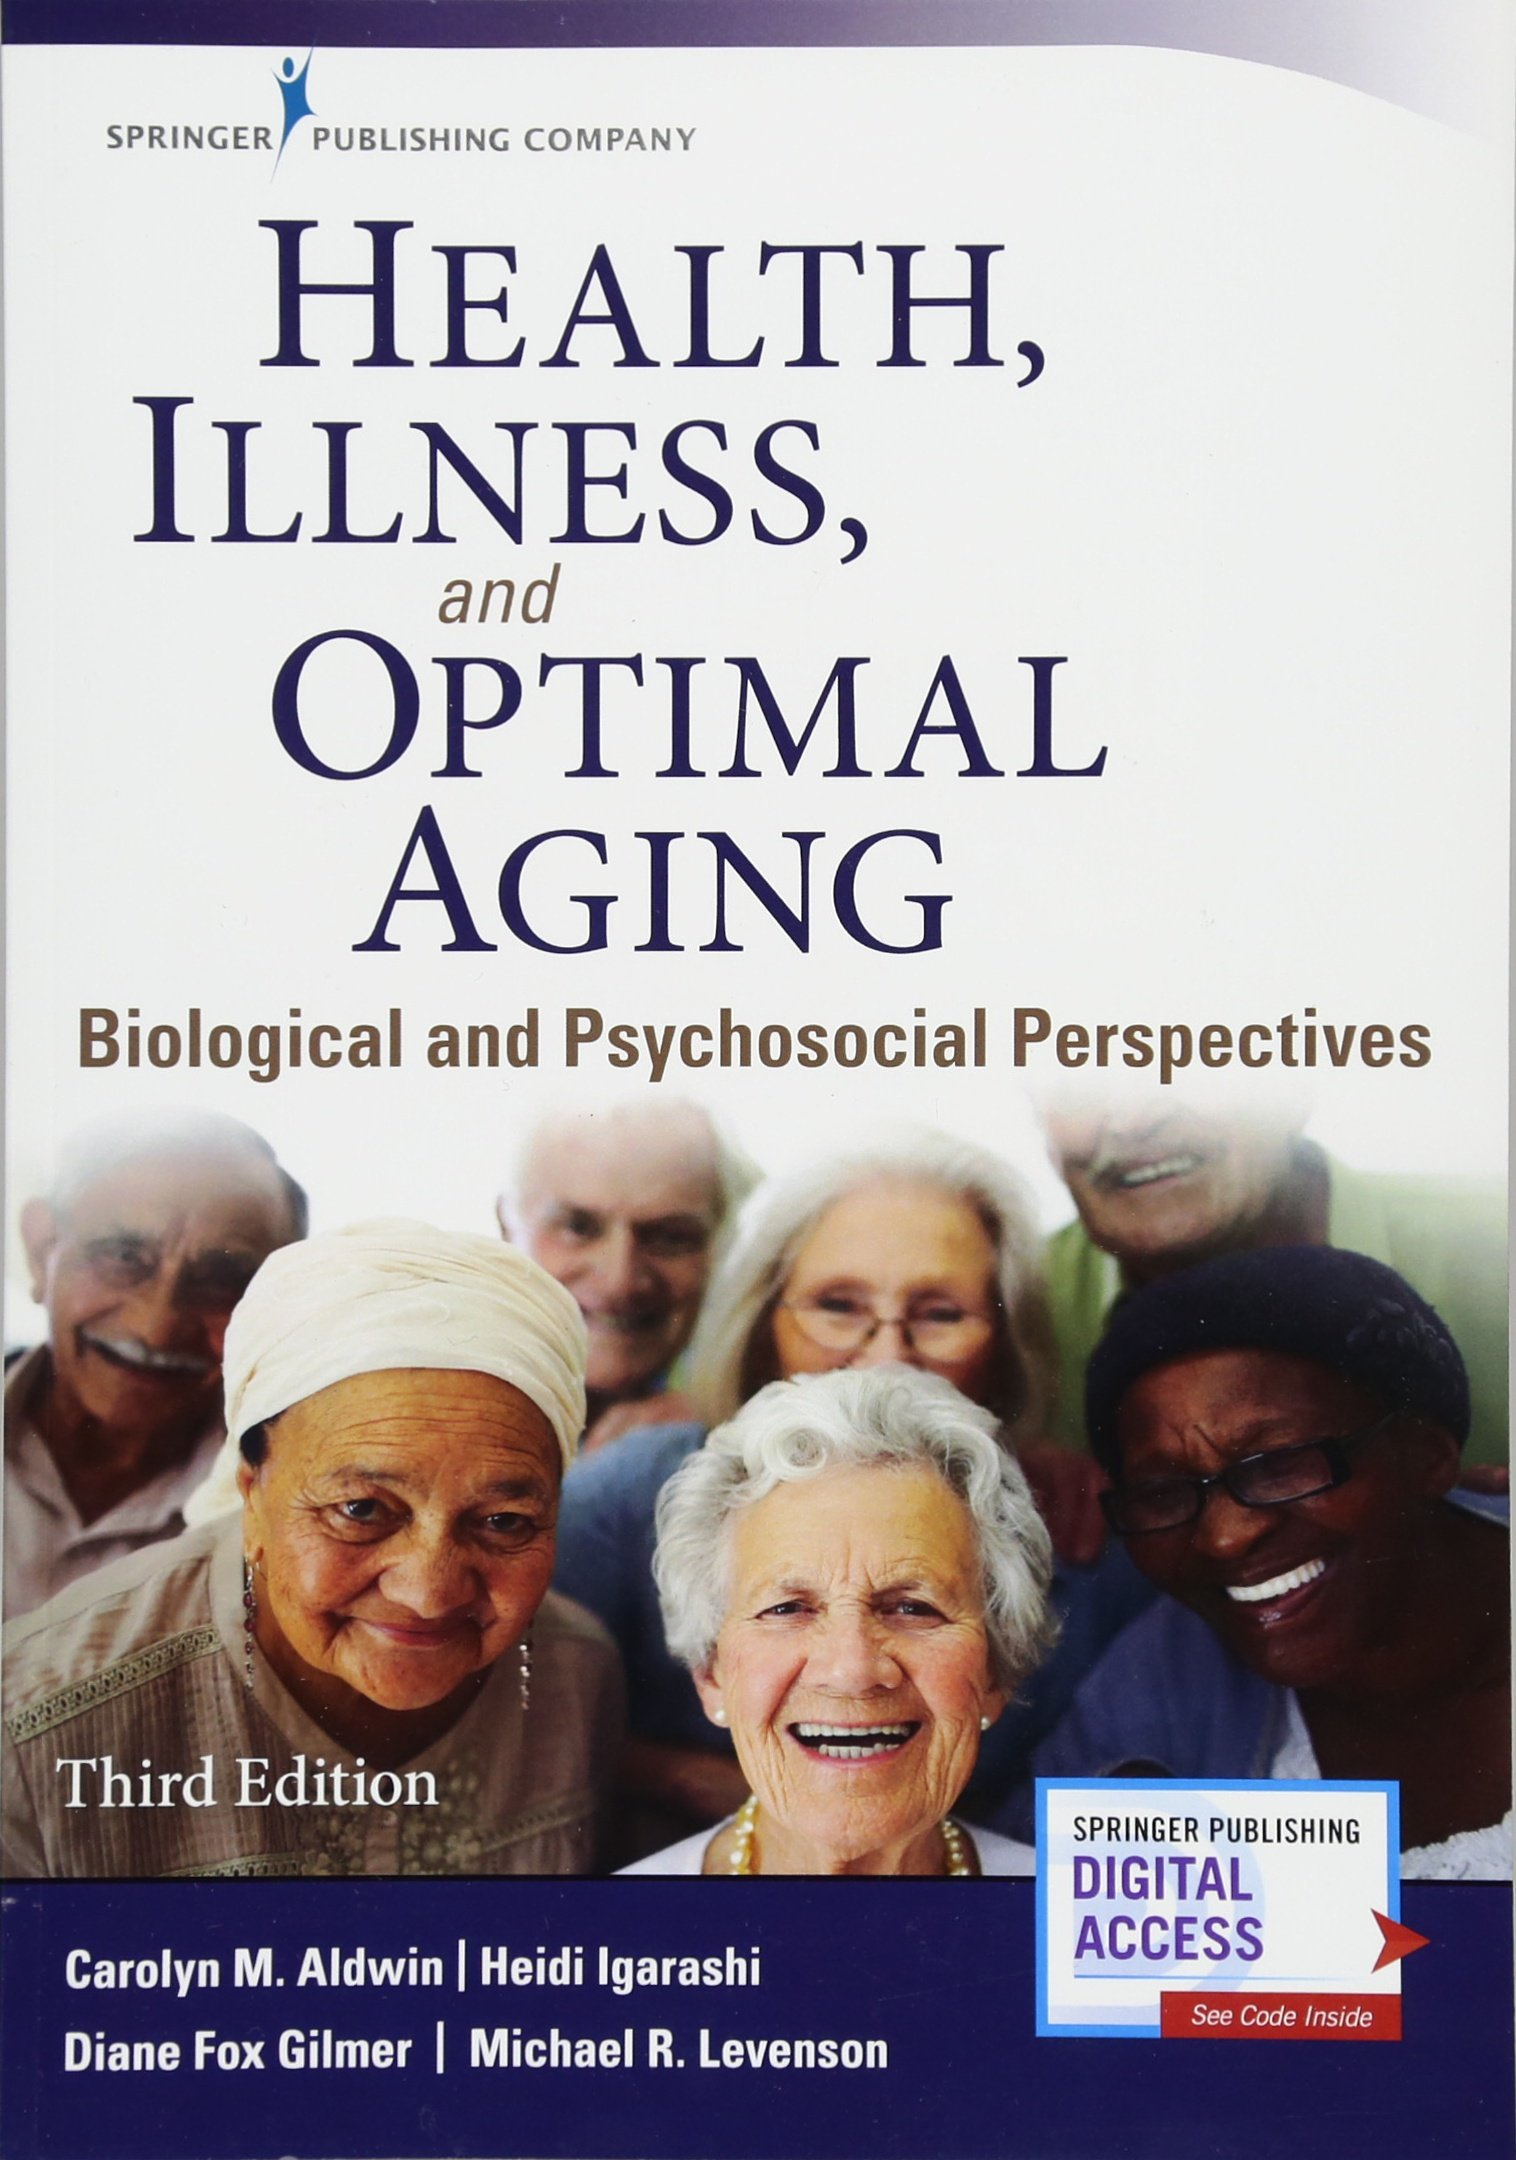 Health, Illness, and Optimal Aging, Third Edition: Biological and Psychosocial Perspectives